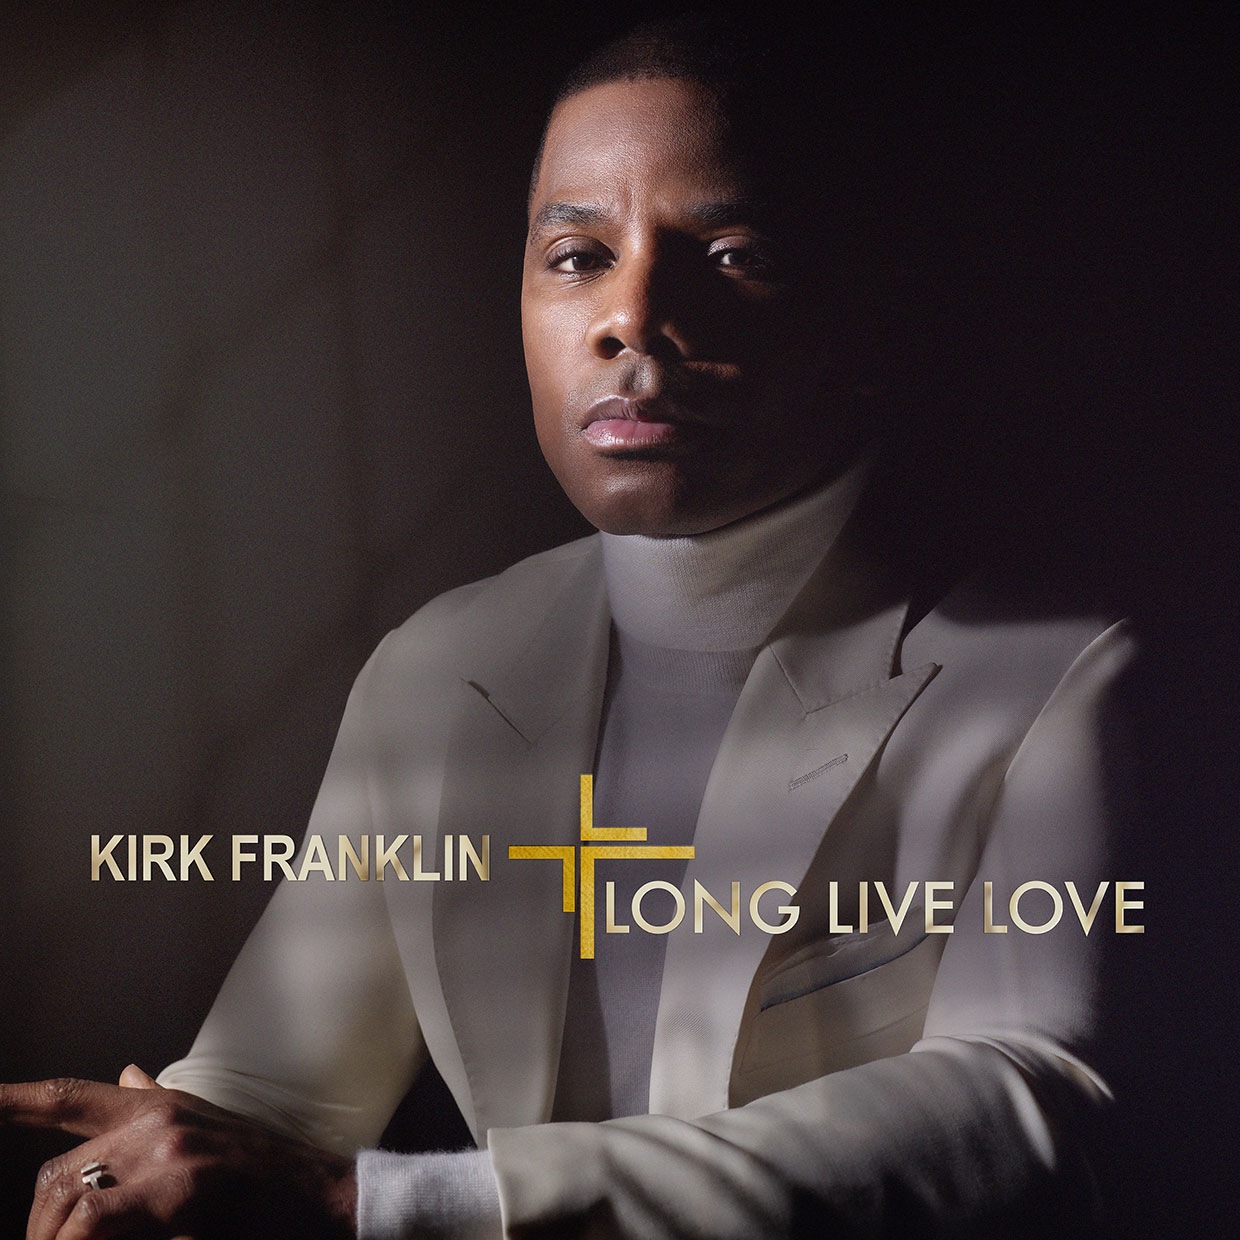 kirk-franklin-long-live-love-2019-billboard-embed